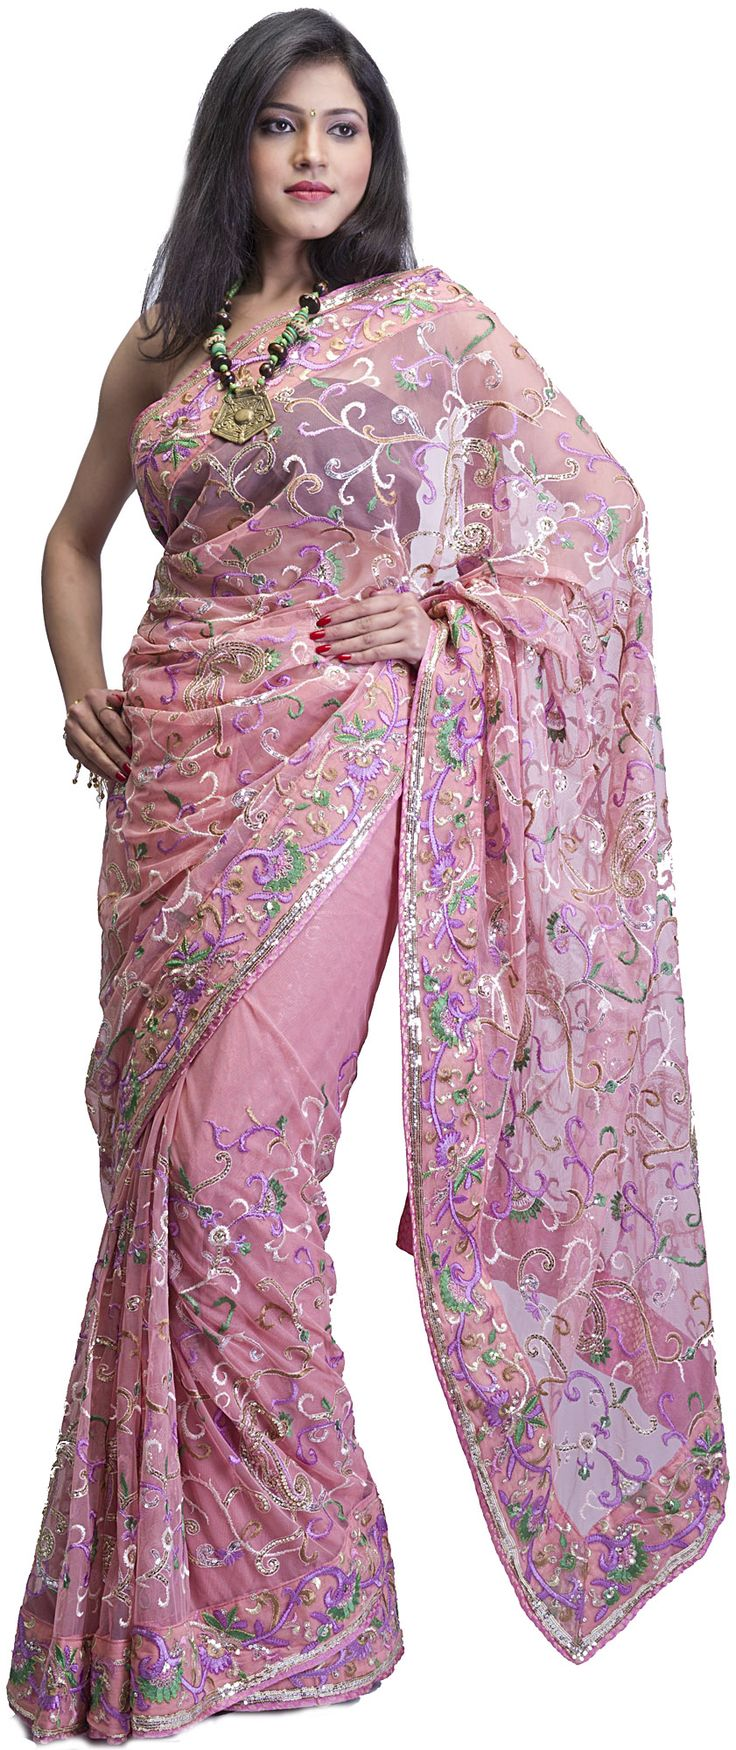 Rosette-Pink Bridal Sari with All-Over Ari Embroidery